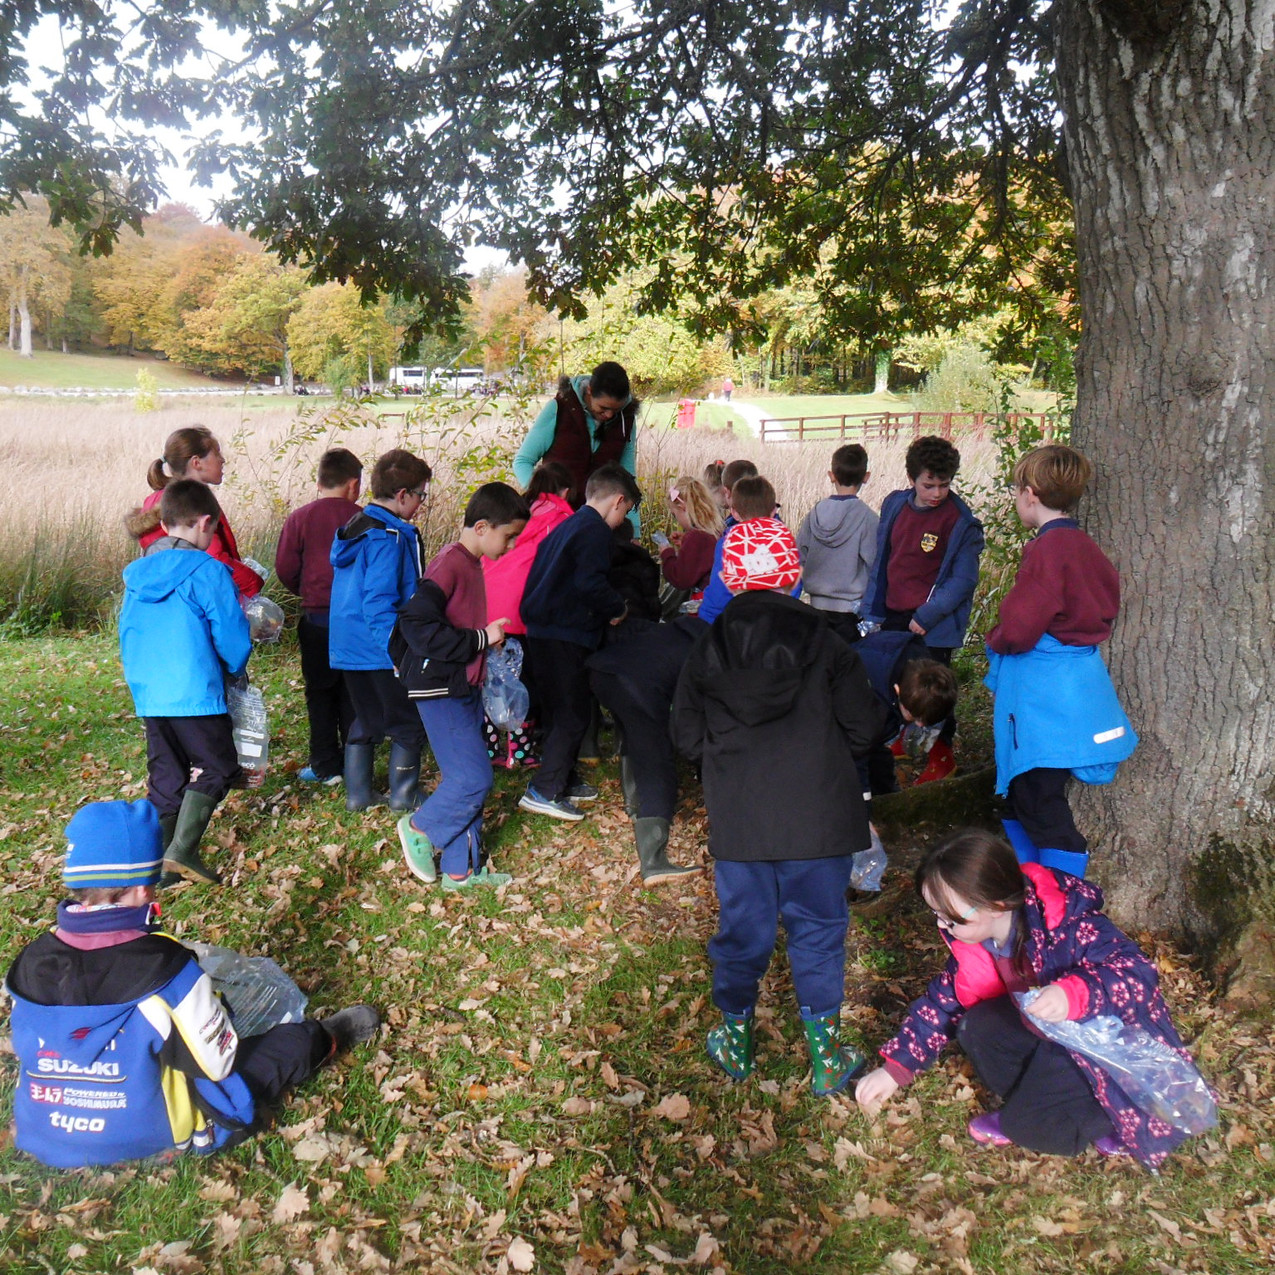 Searching for acorns